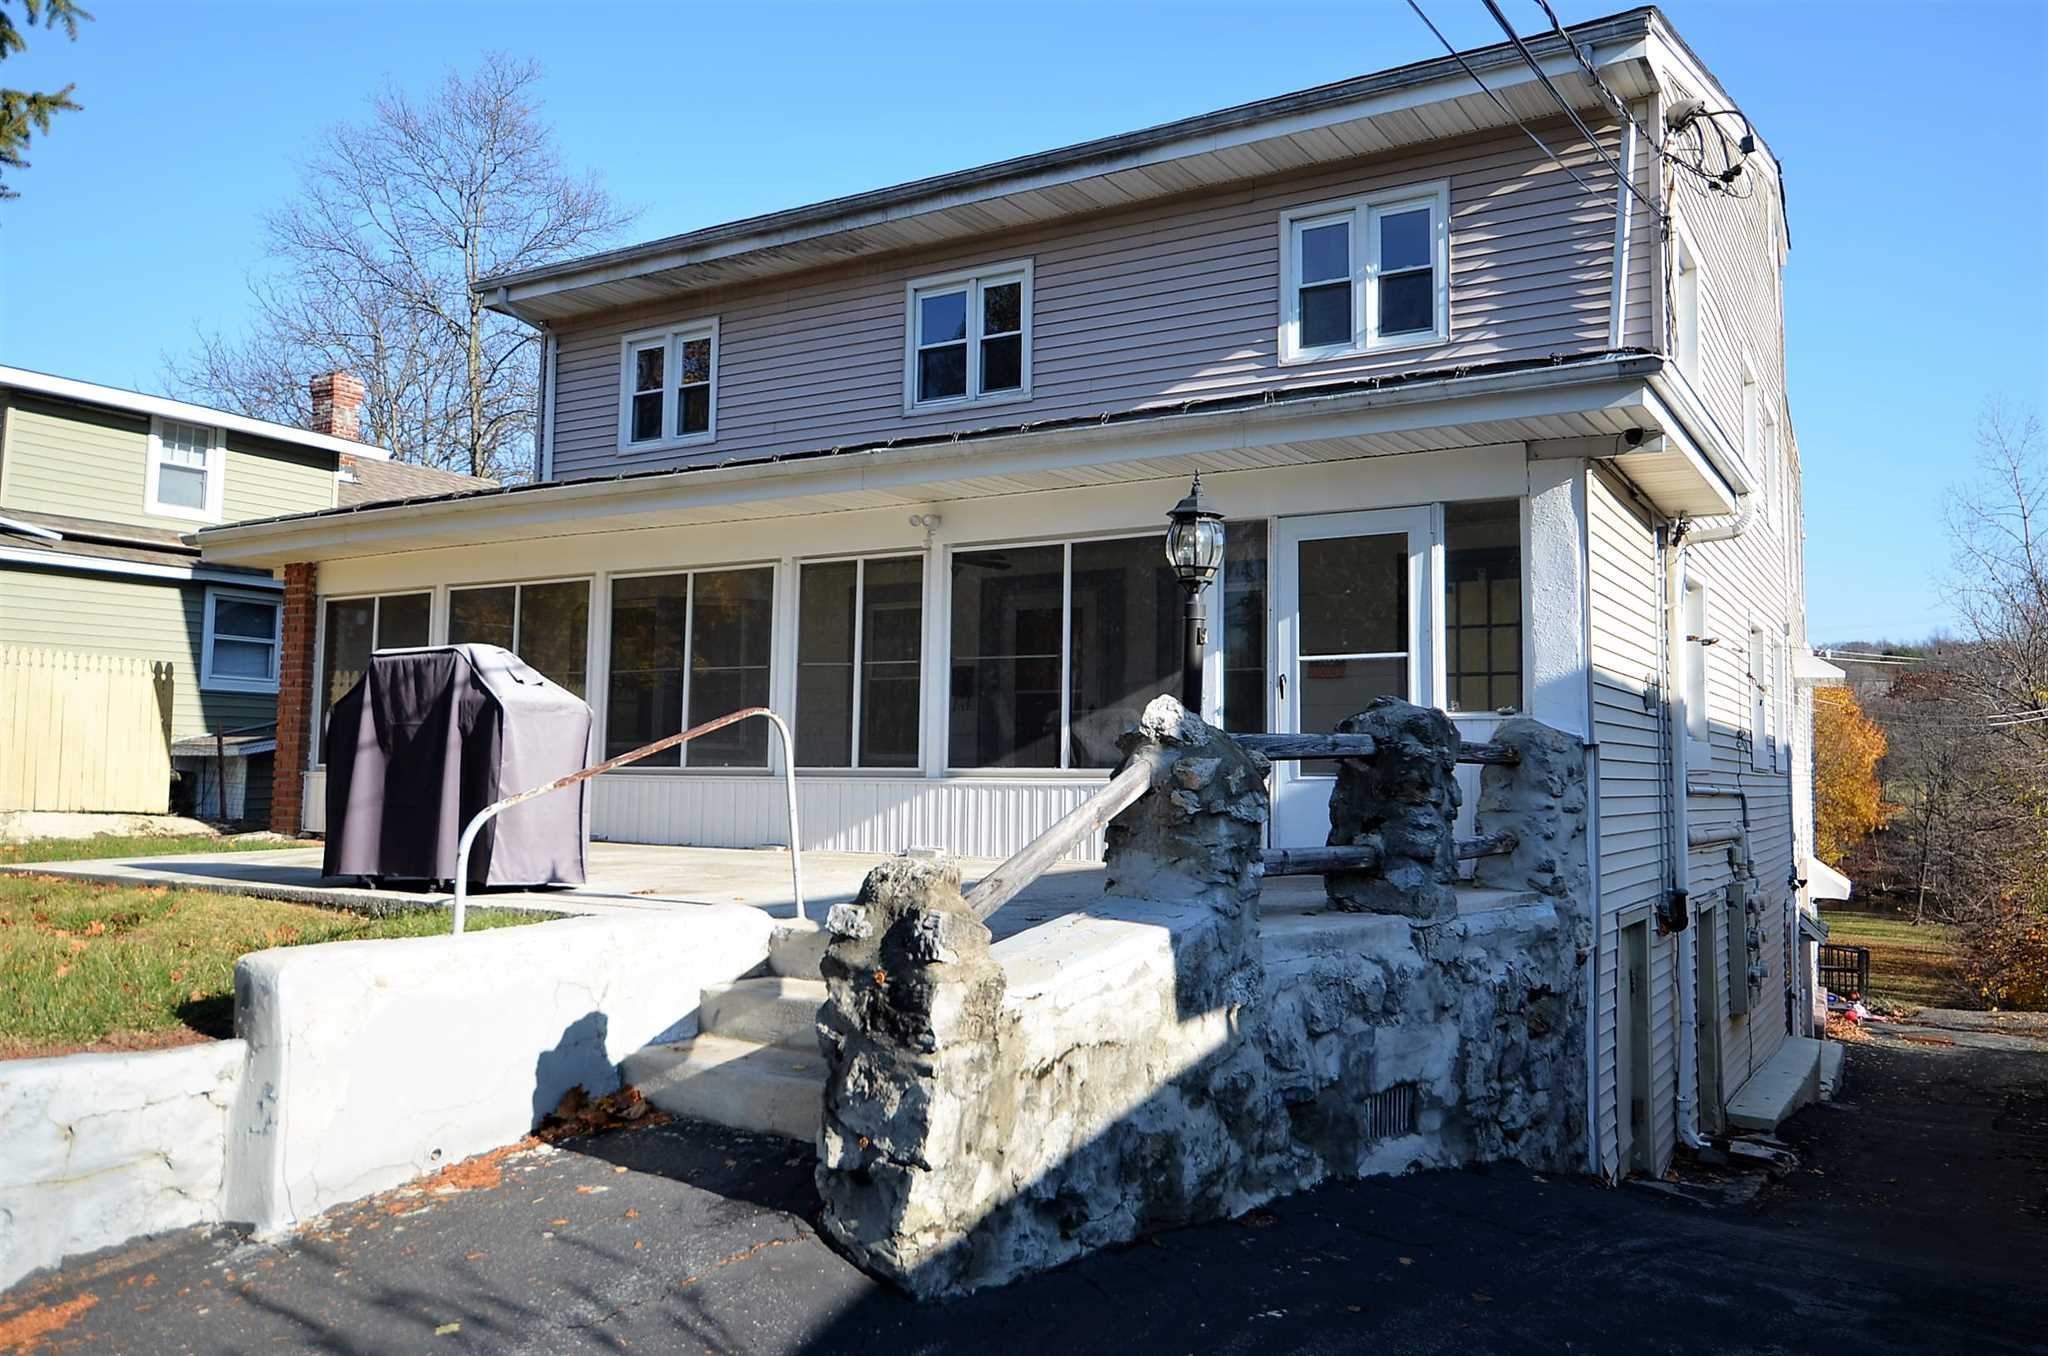 Single Family Home for Rent at 1342 ROUTE 44 1342 ROUTE 44 Pleasant Valley, New York 12569 United States